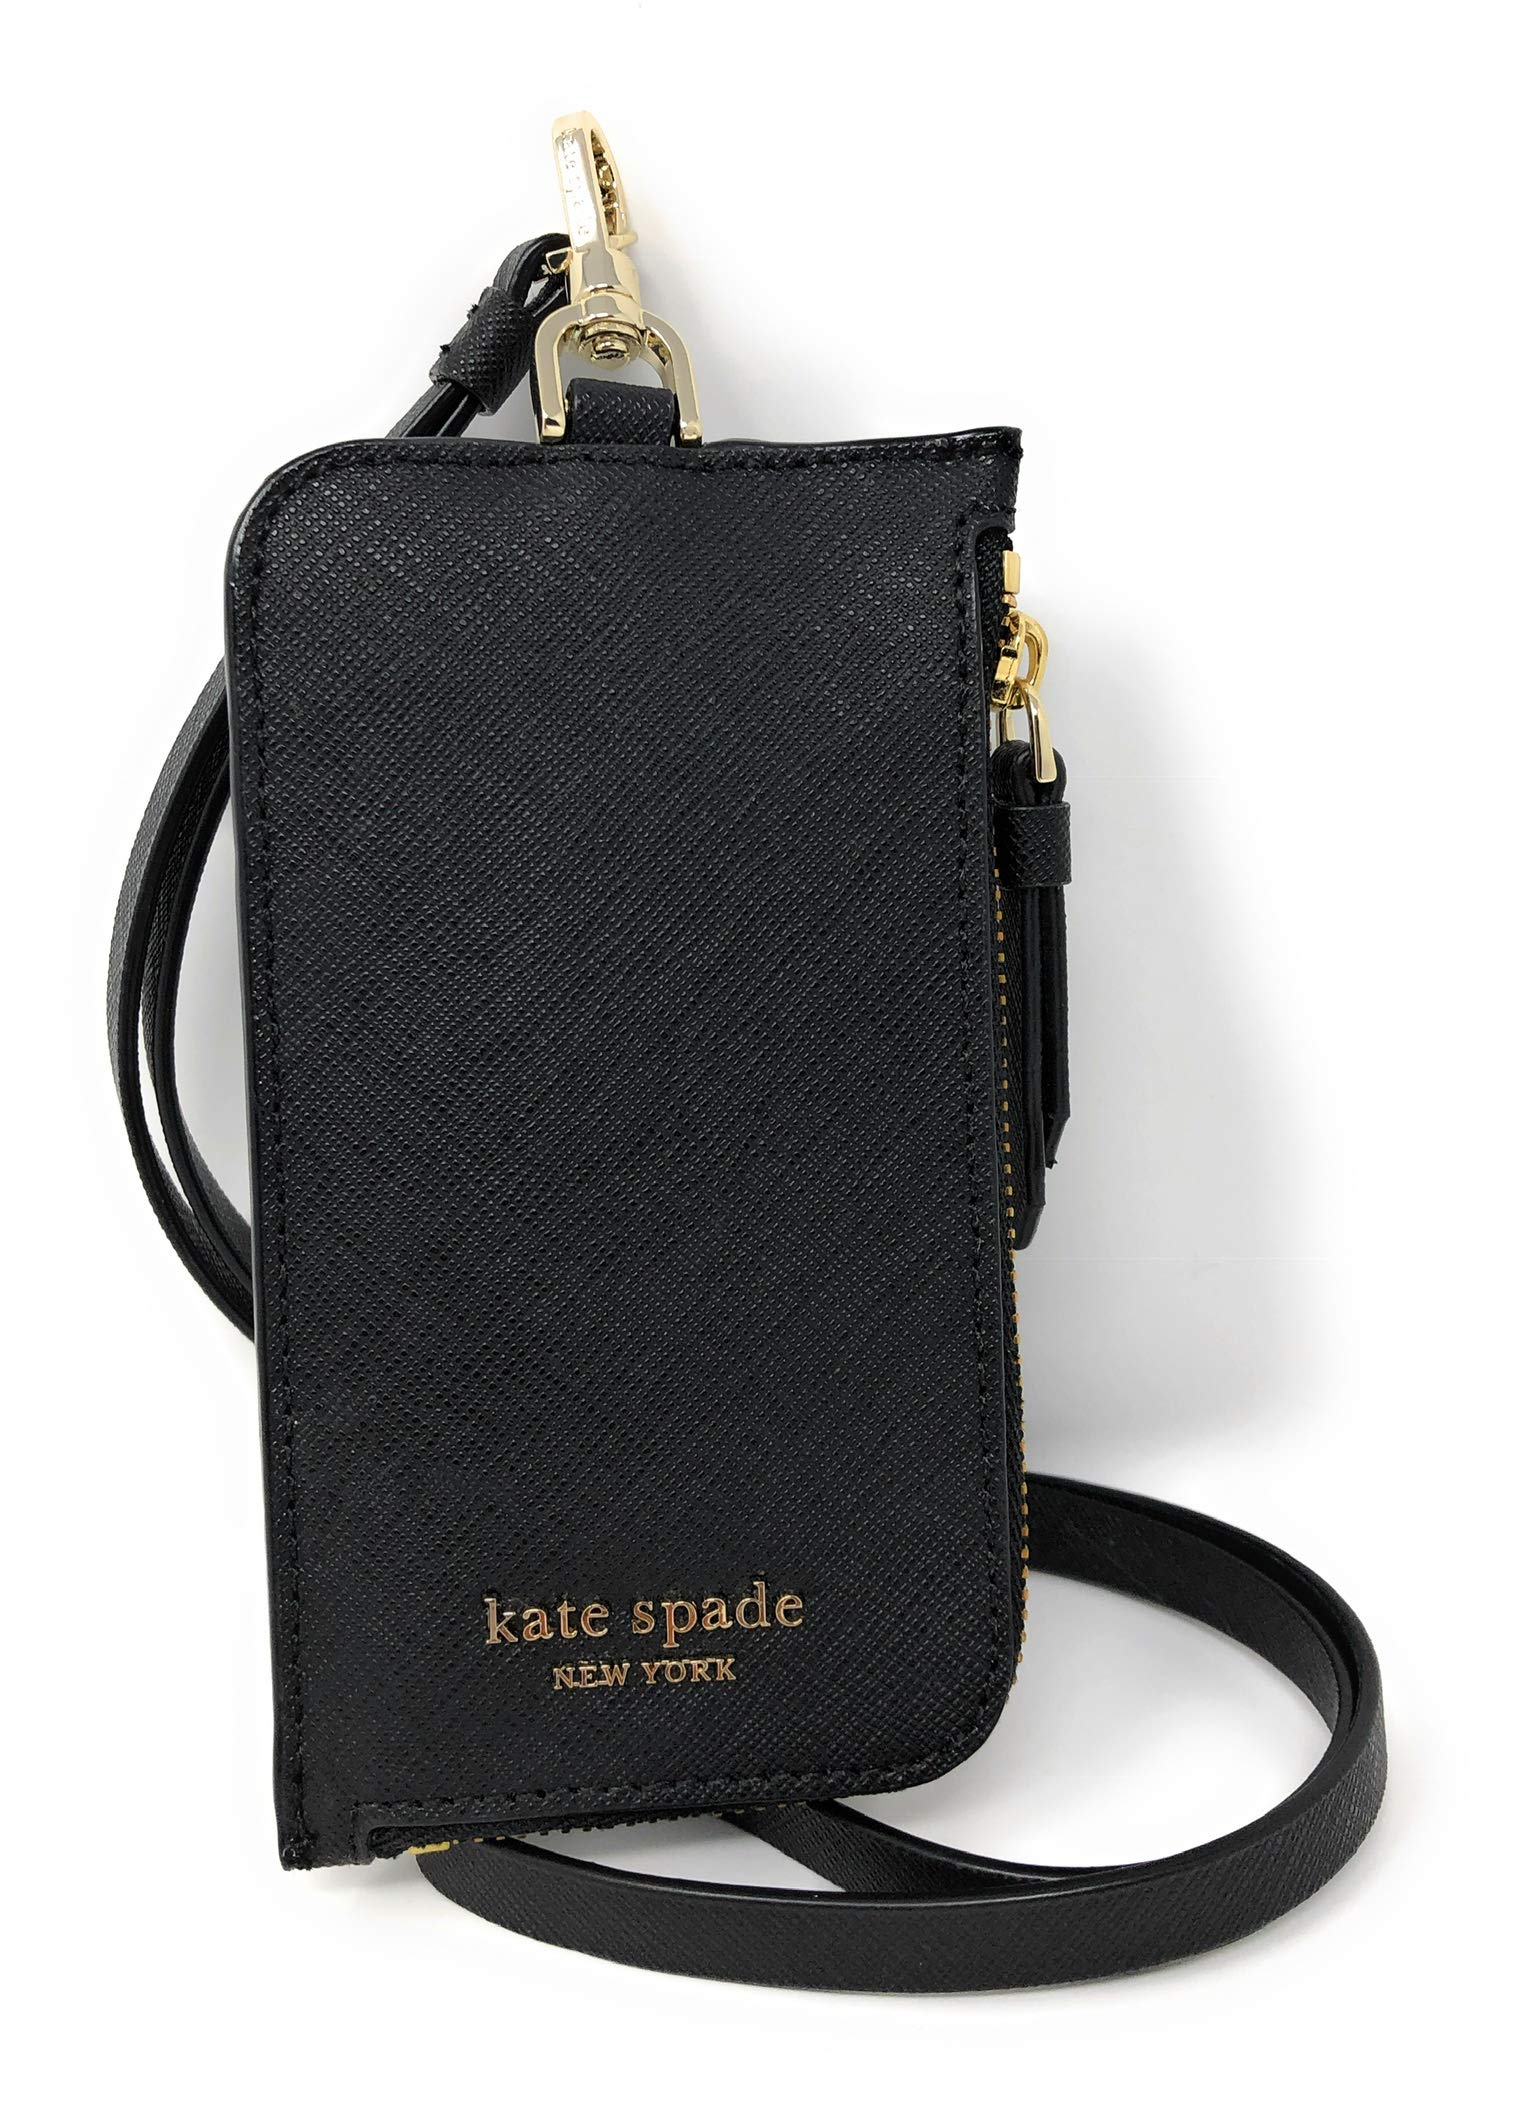 Kate Spade New York L-Zip Saffiano Leather Card Case Lanyard Black by Kate Spade New York